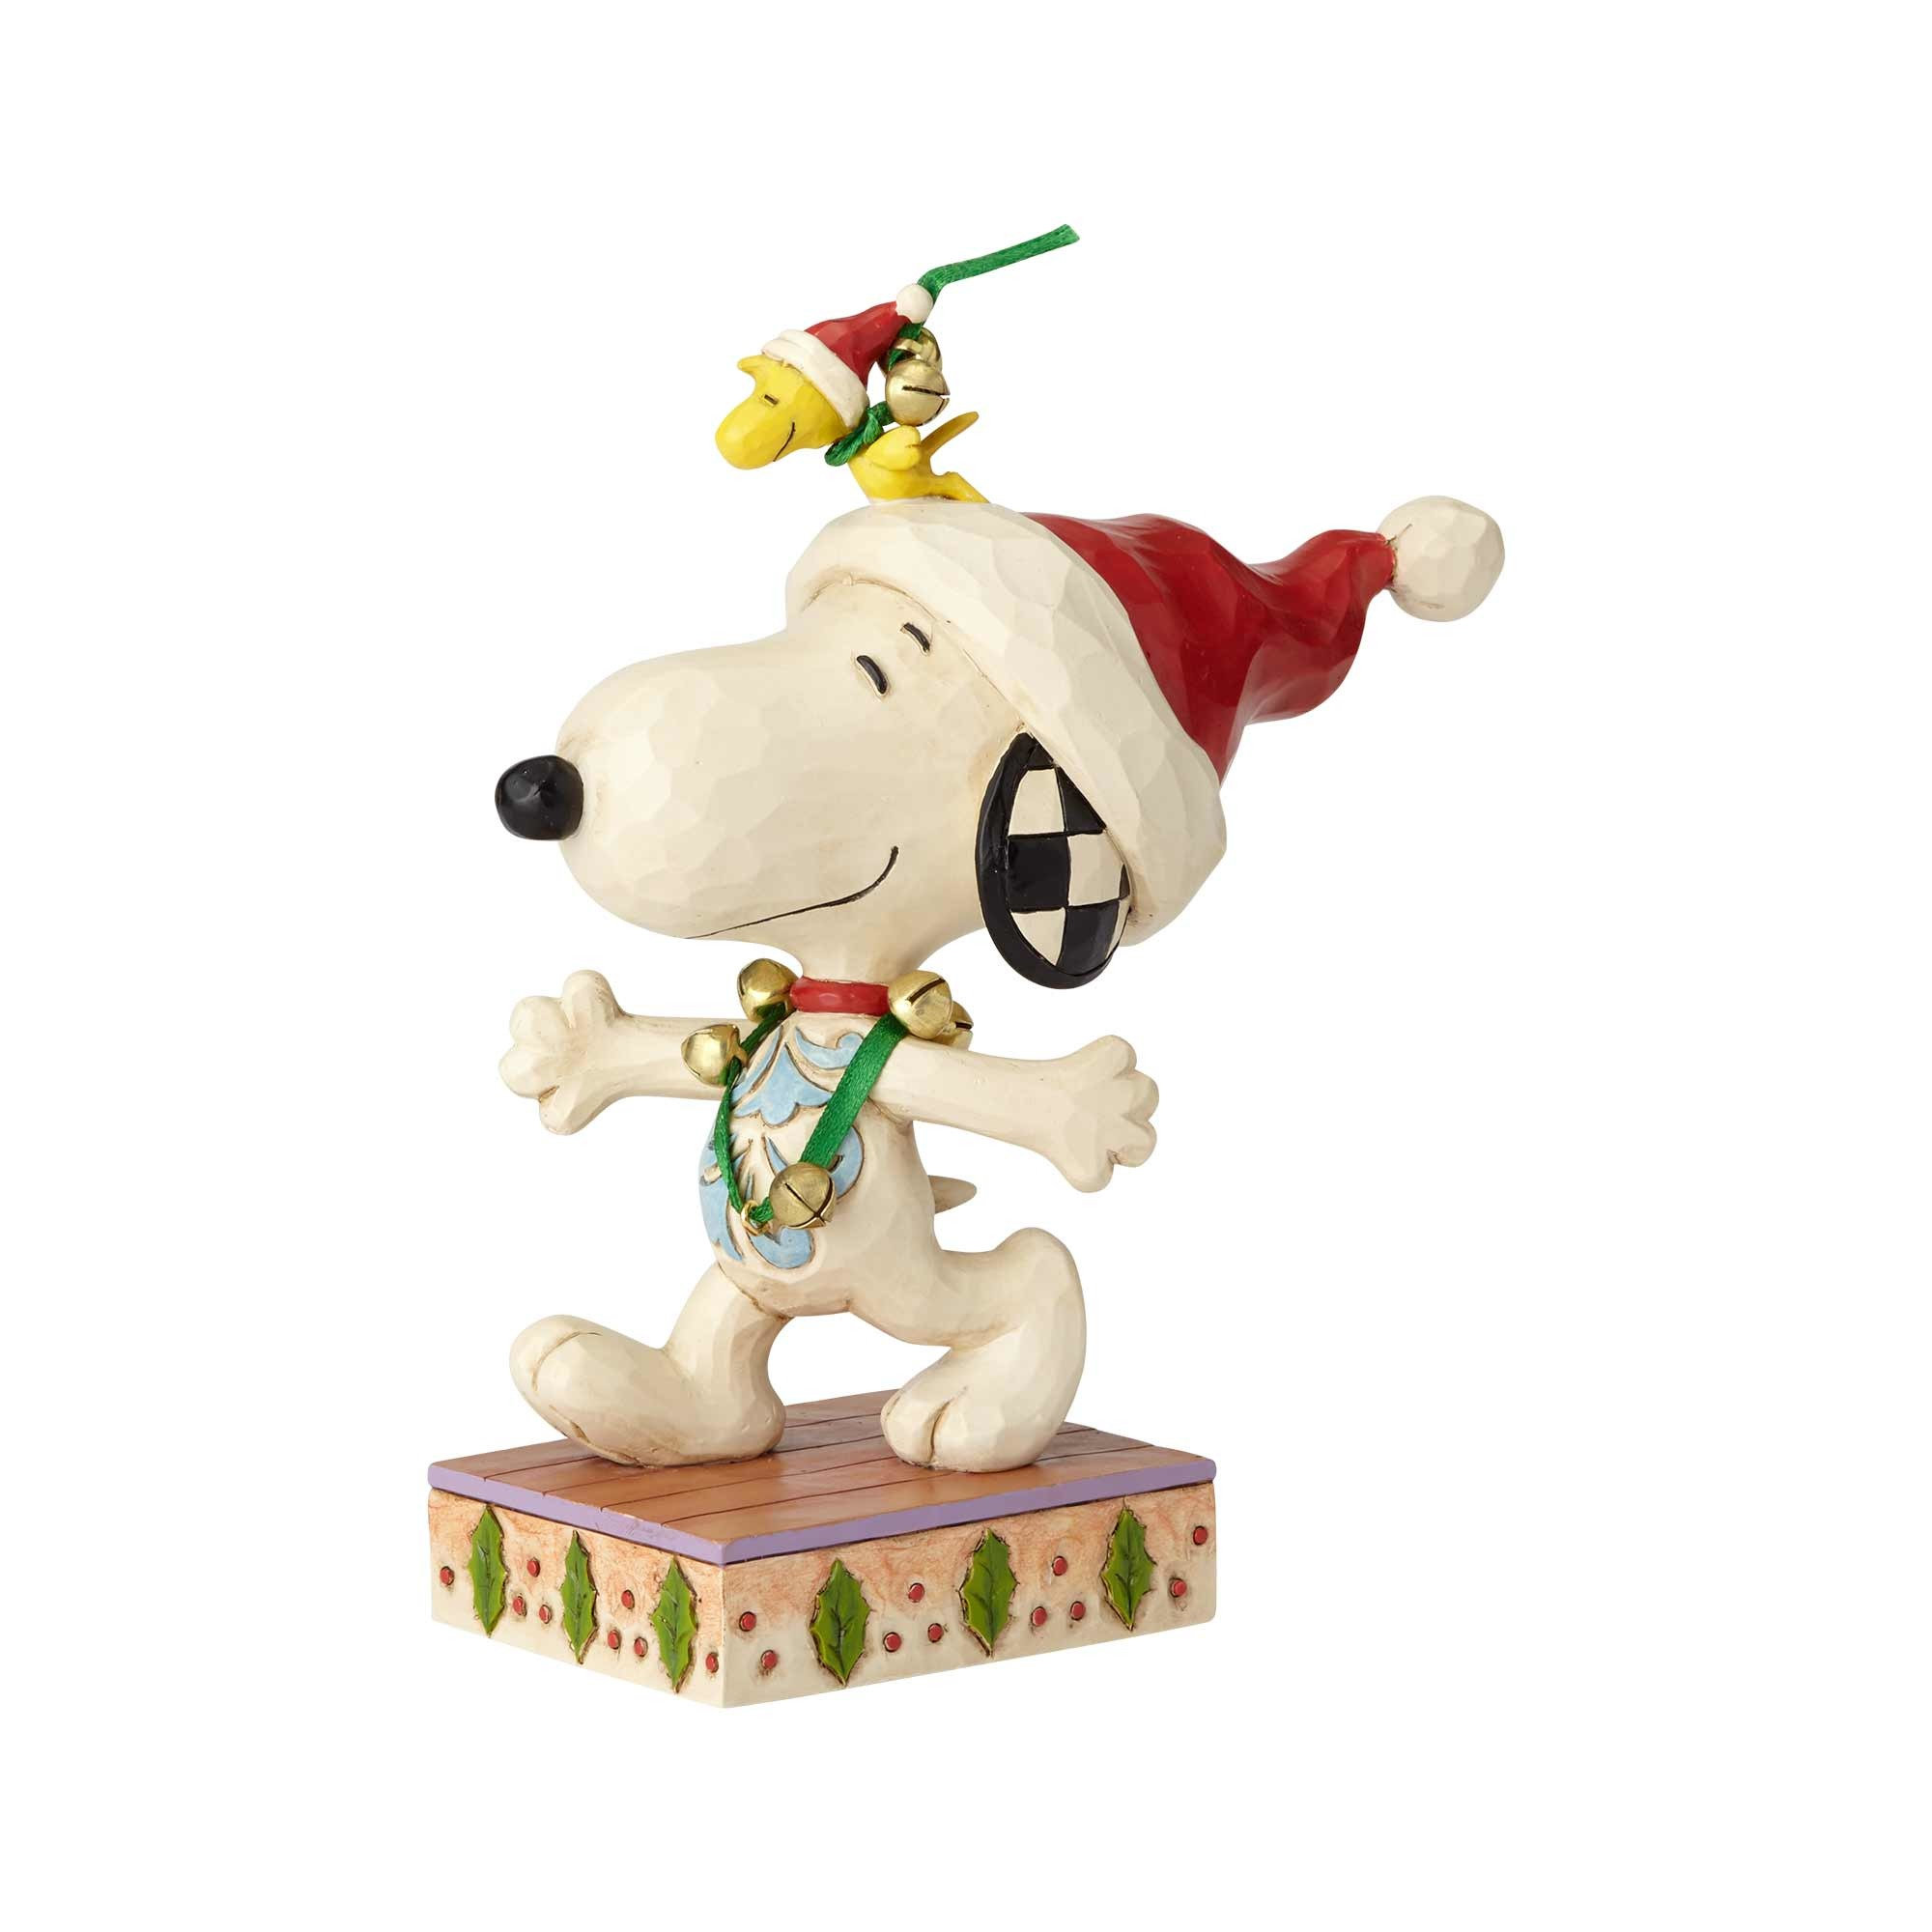 Snoopy and Woodstock with Jingle Bells